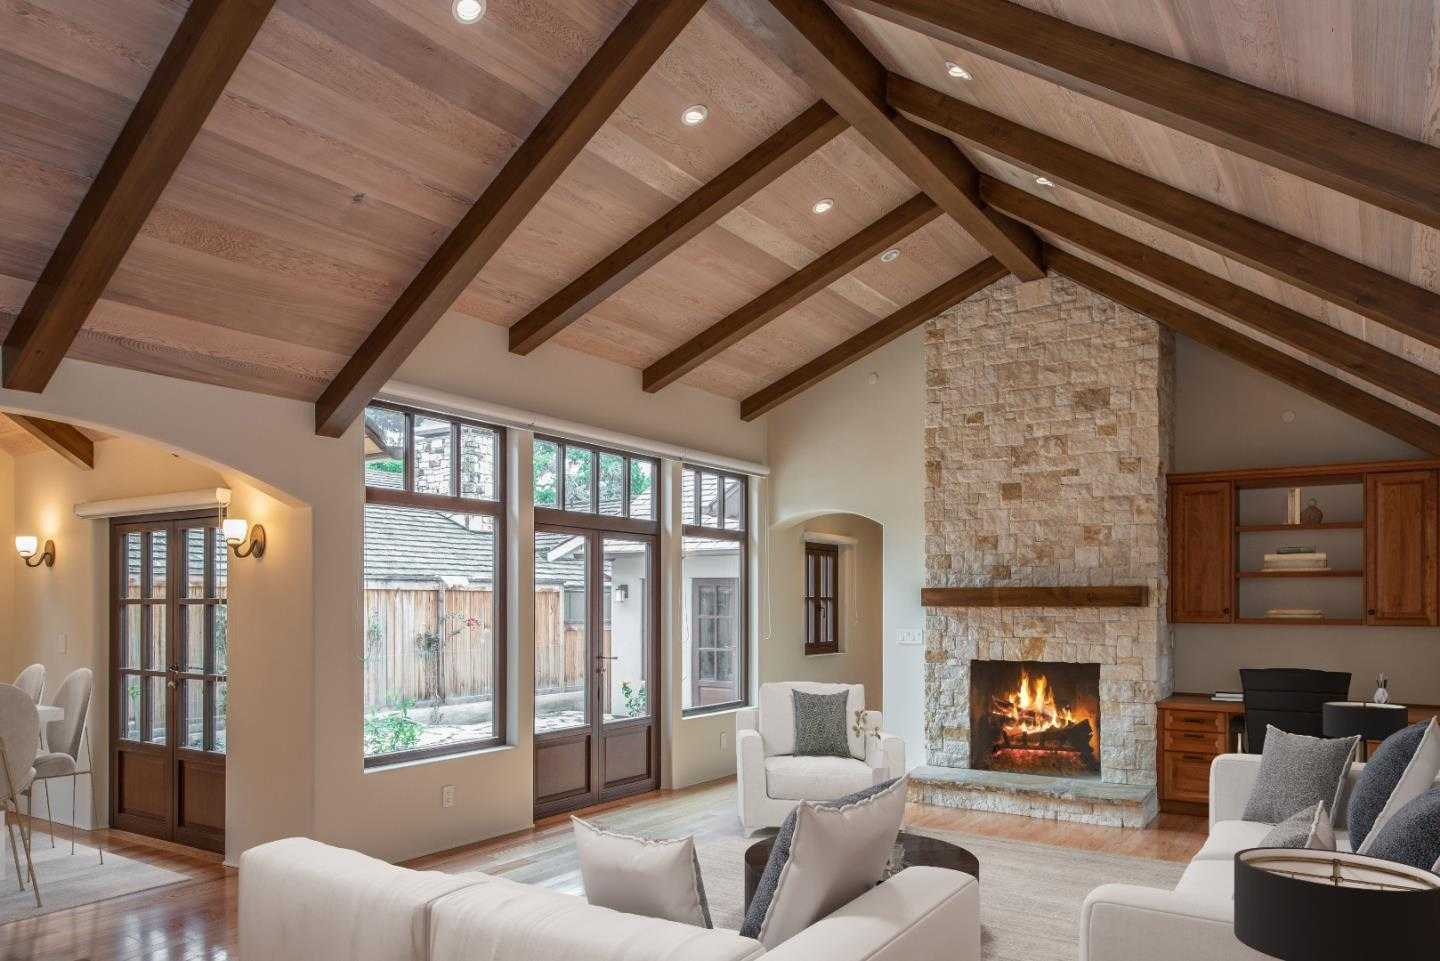 $2,995,000 - 3Br/2Ba -  for Sale in Carmel